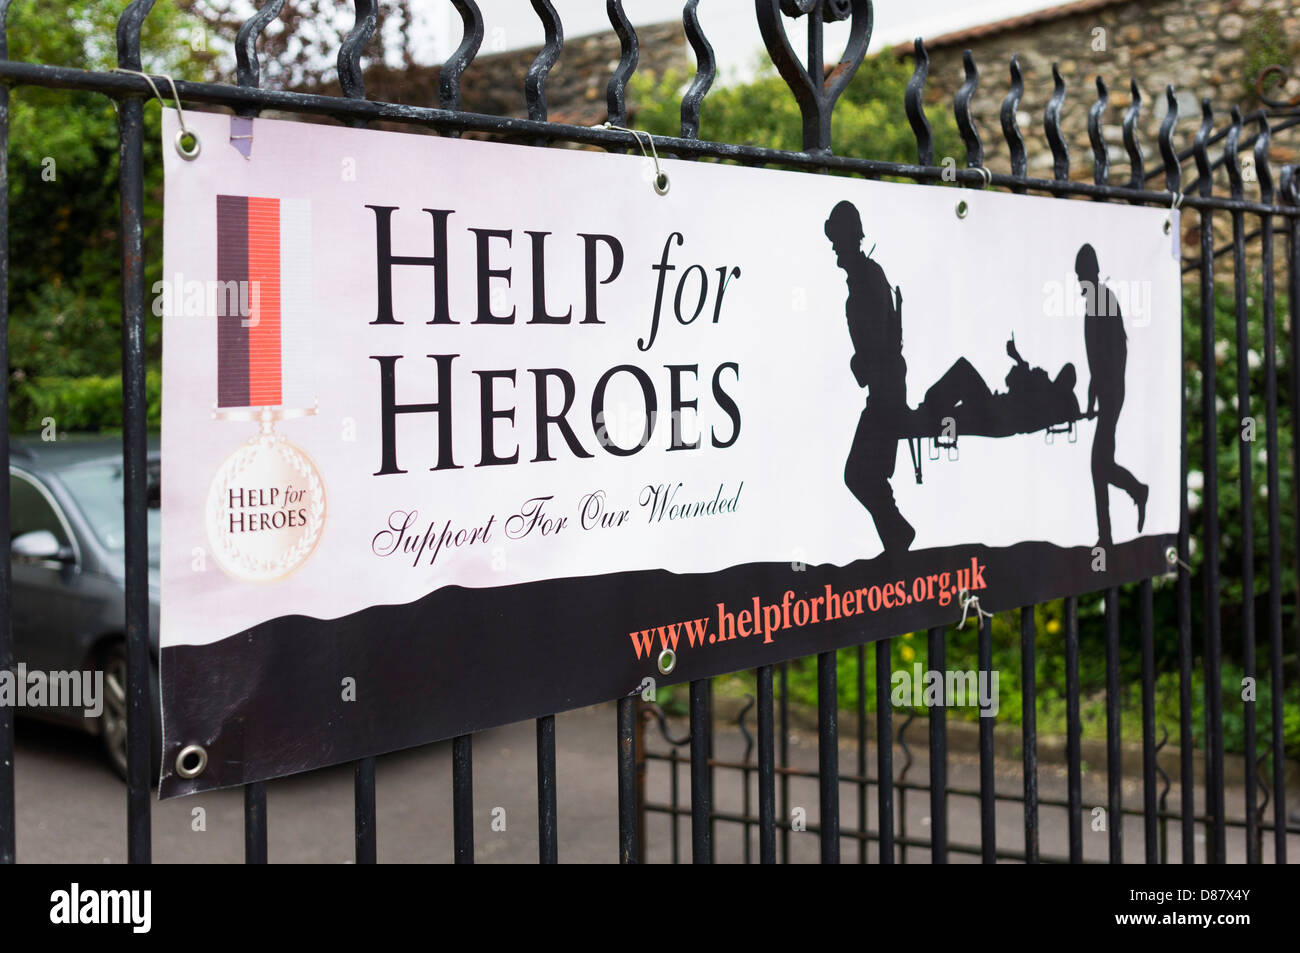 Help for Heroes charity banner, UK - Stock Image